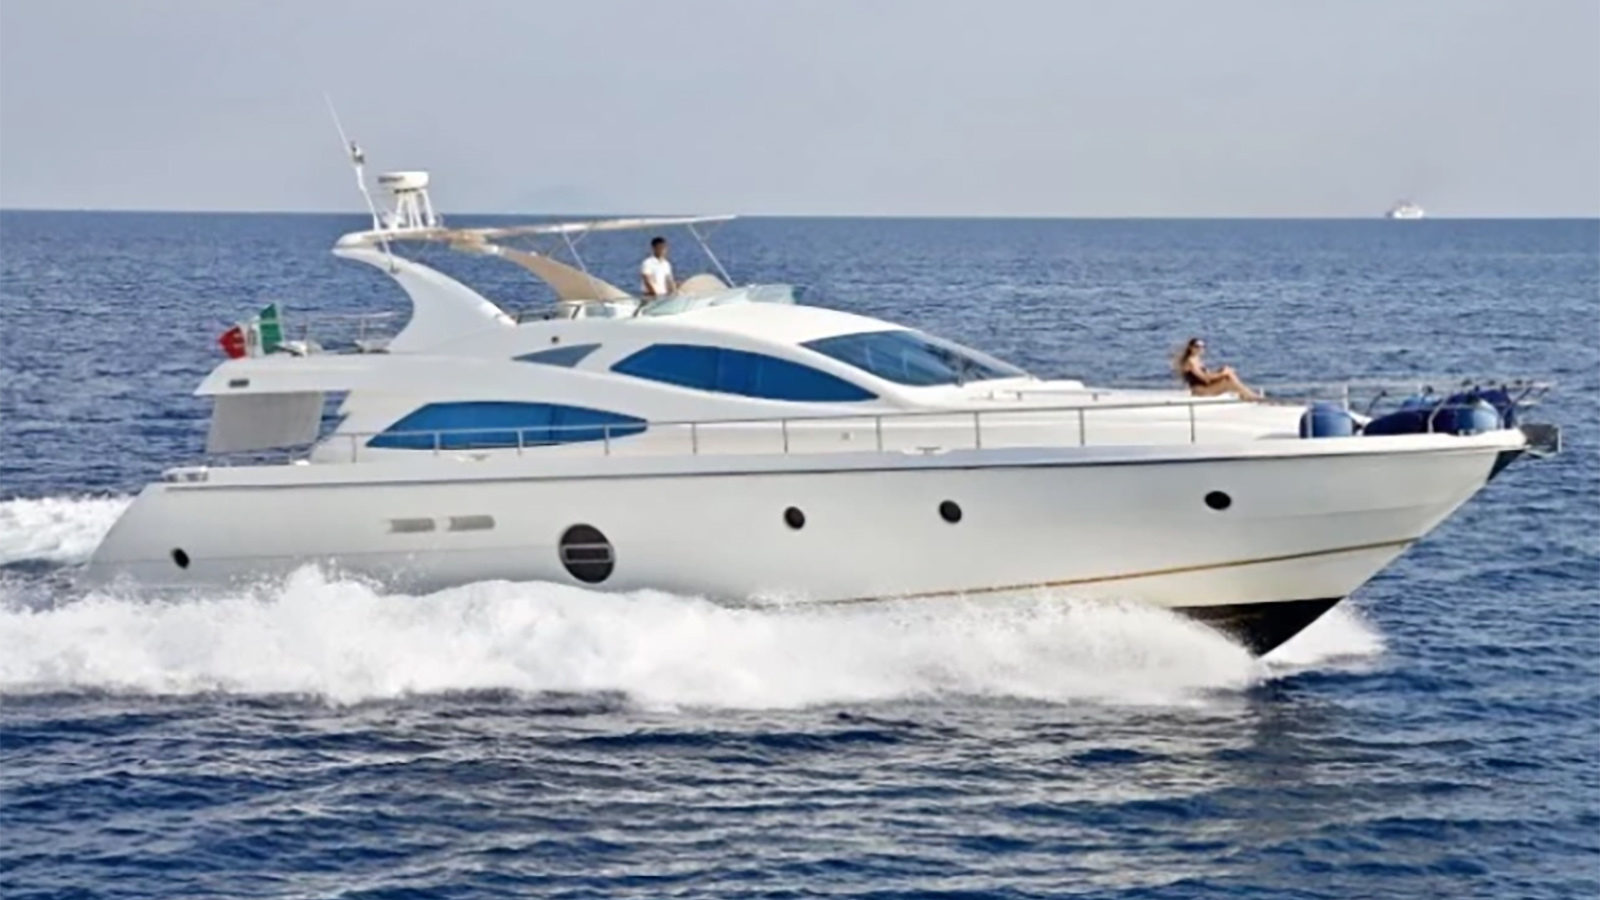 JULY Yacht for Sale - IYC